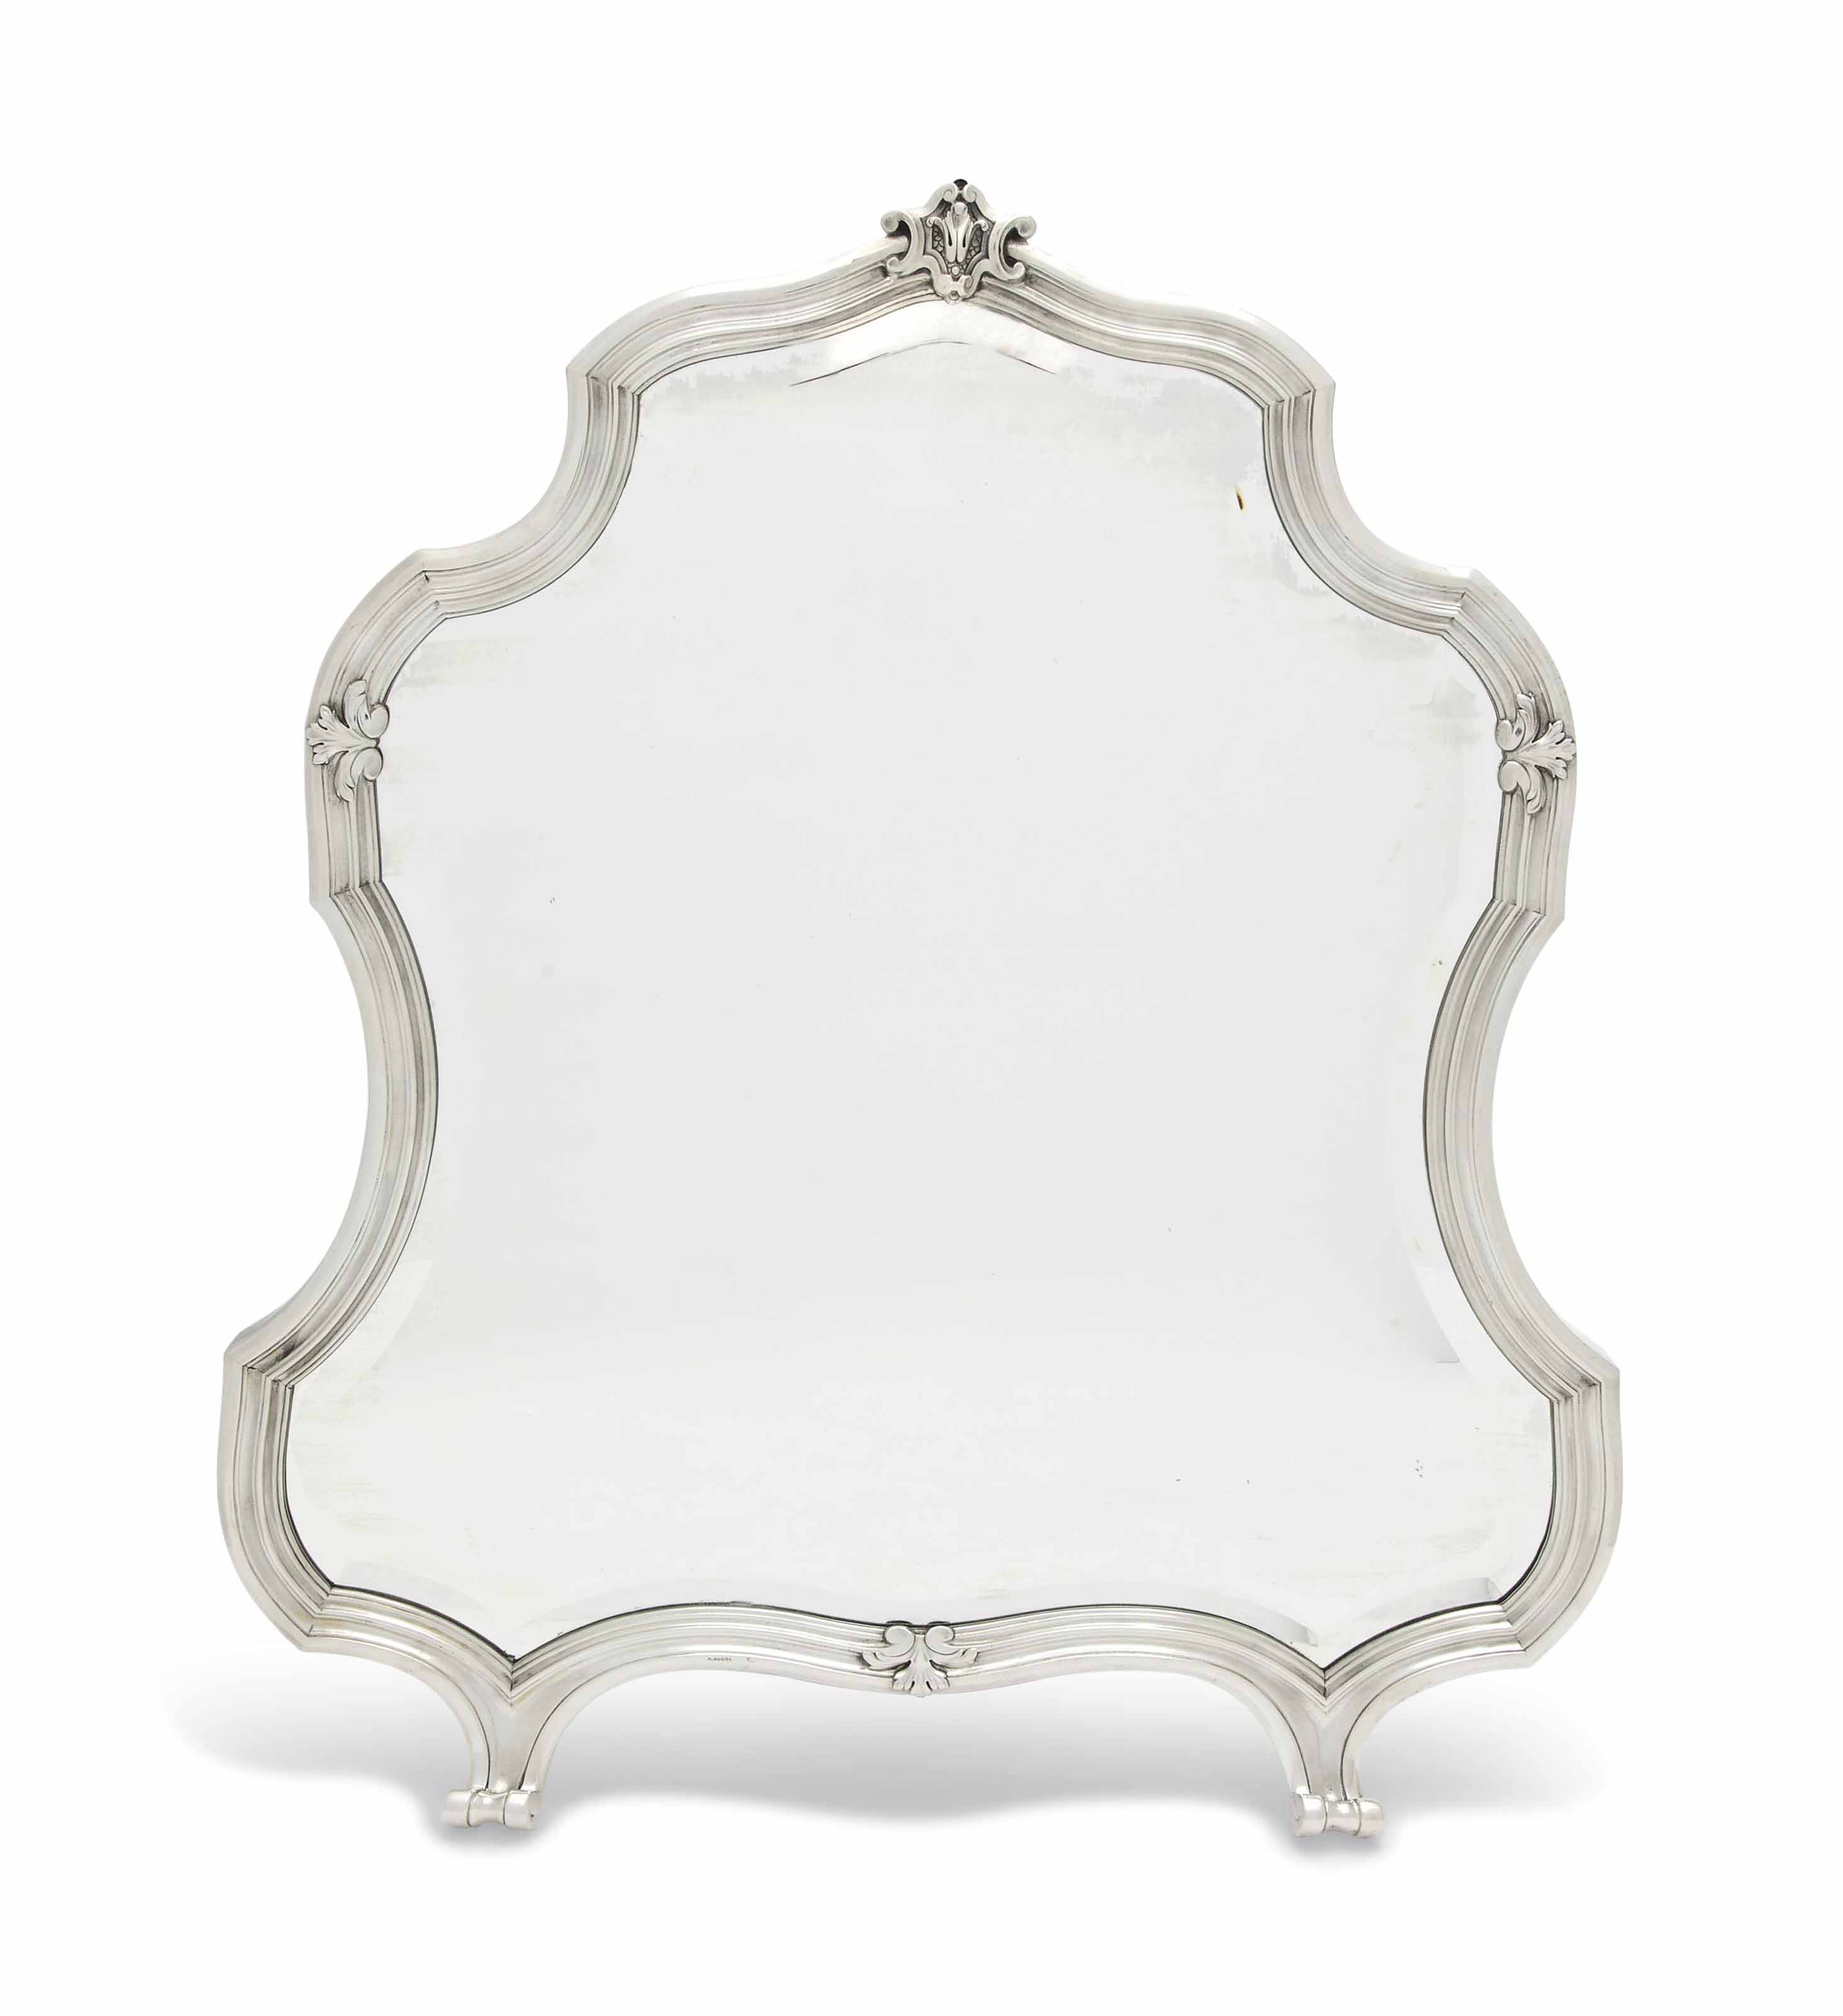 A FRENCH SILVER-MOUNTED DRESSI